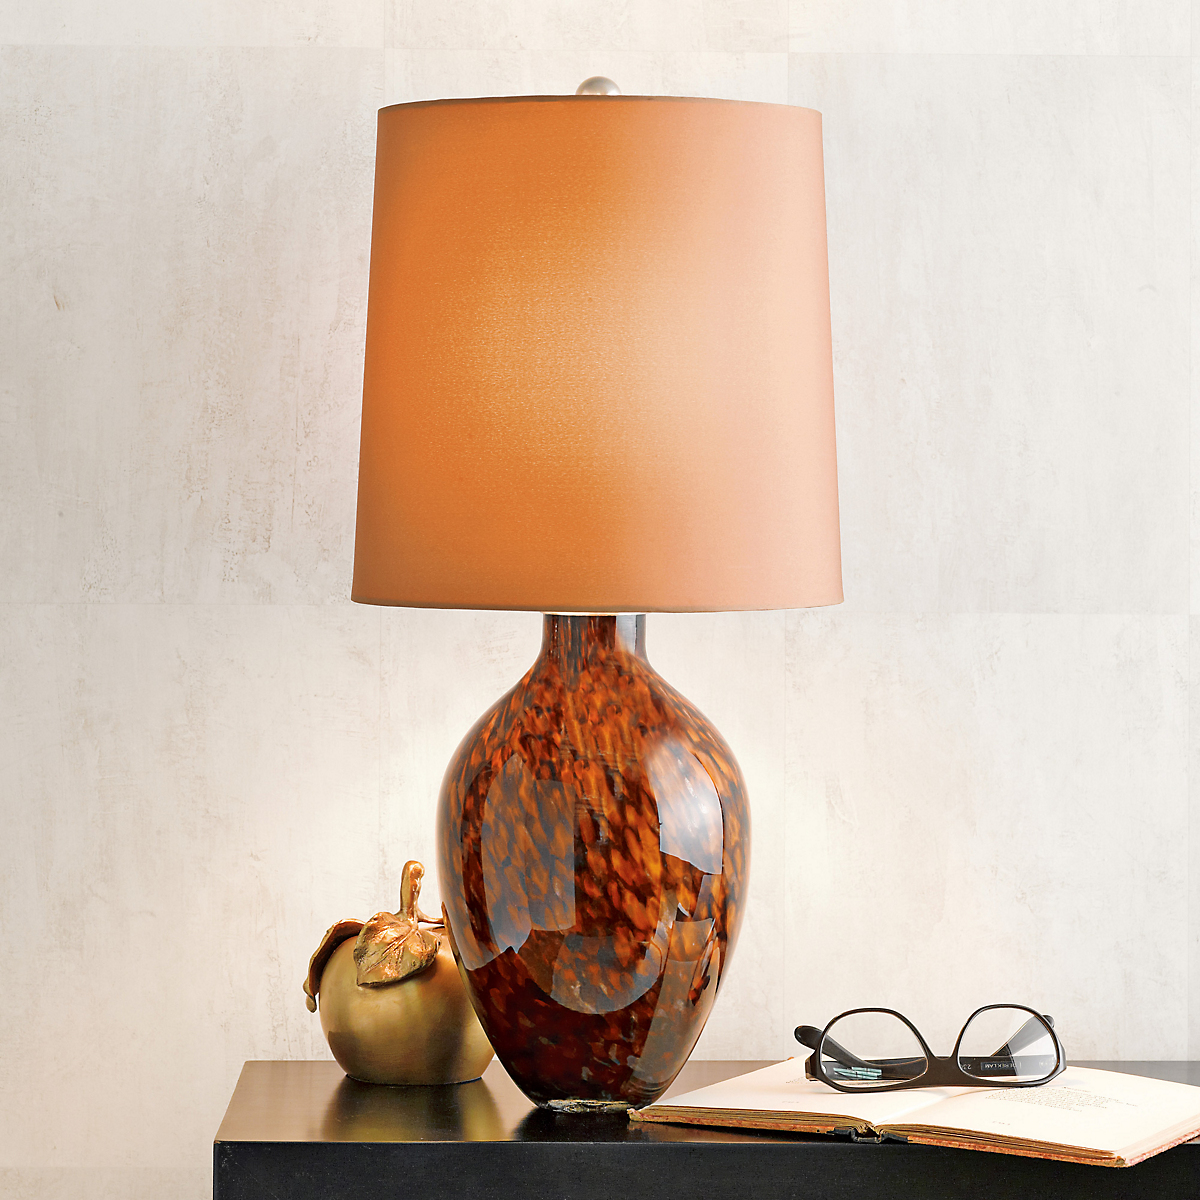 Malila Glass Table Lamp